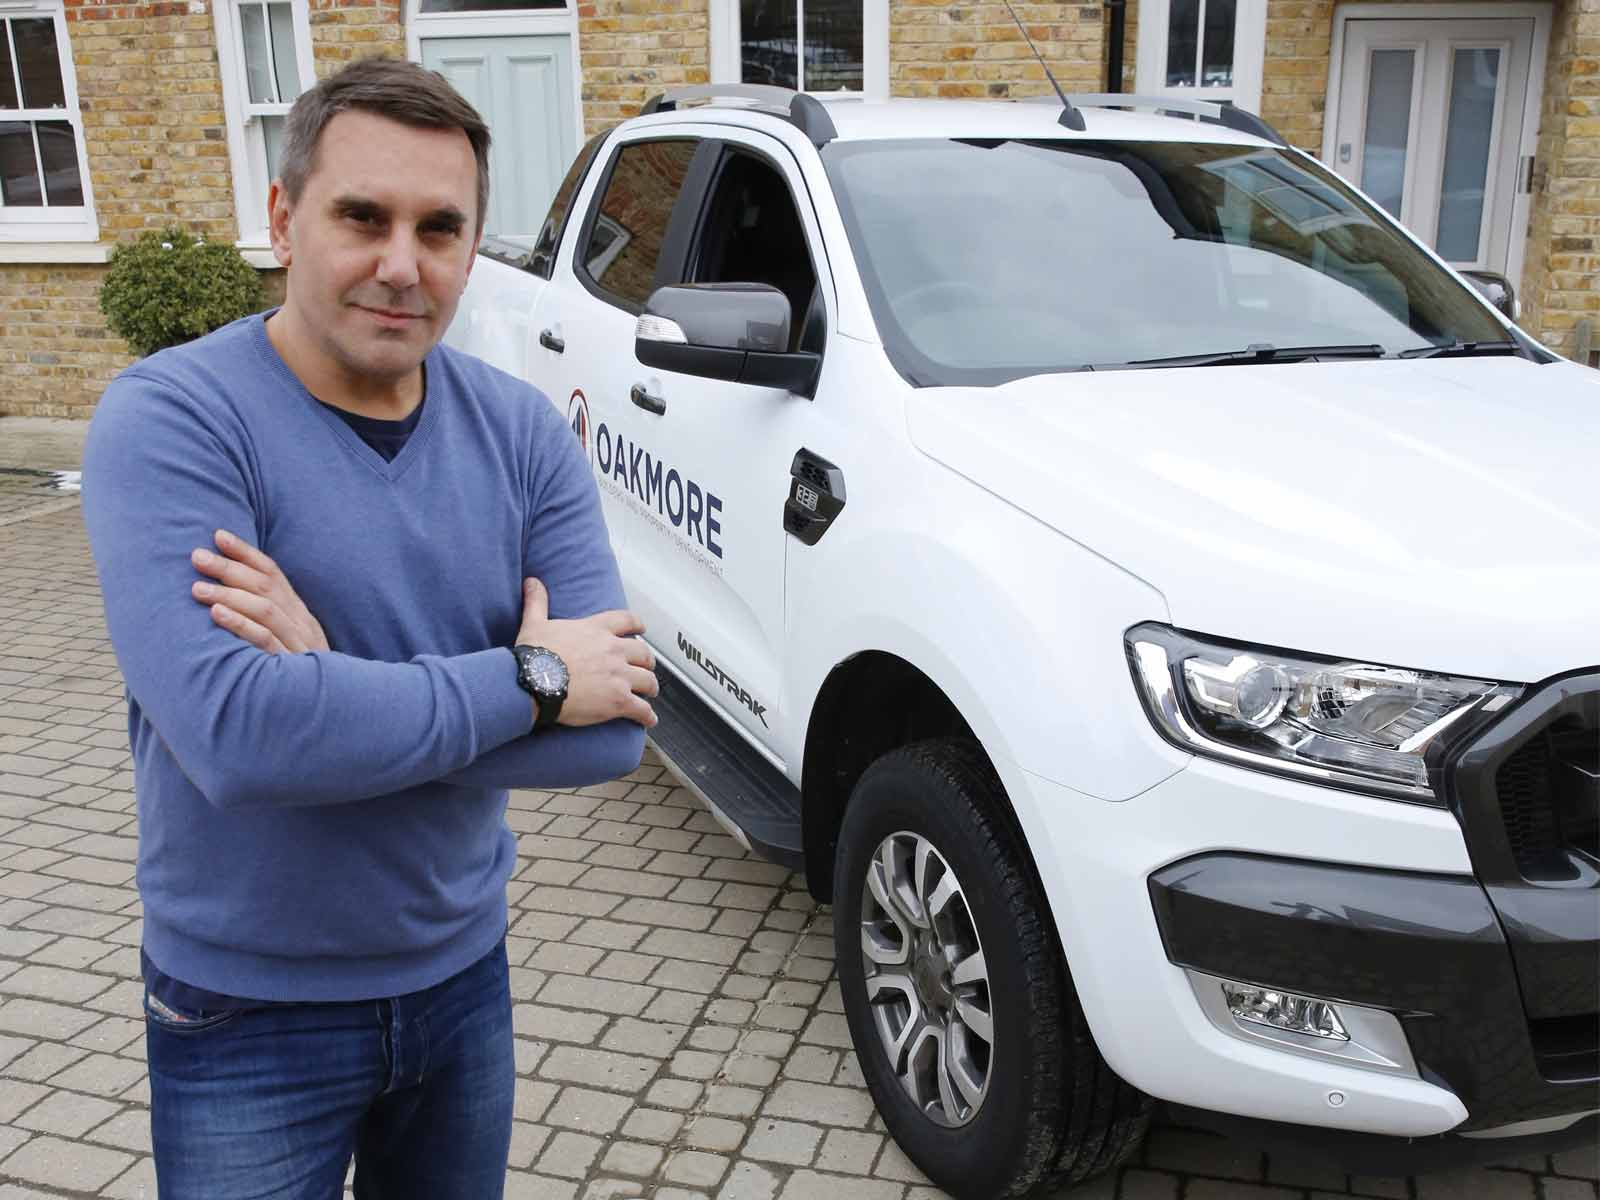 Oakmore Builders Targets First £1M Turnover